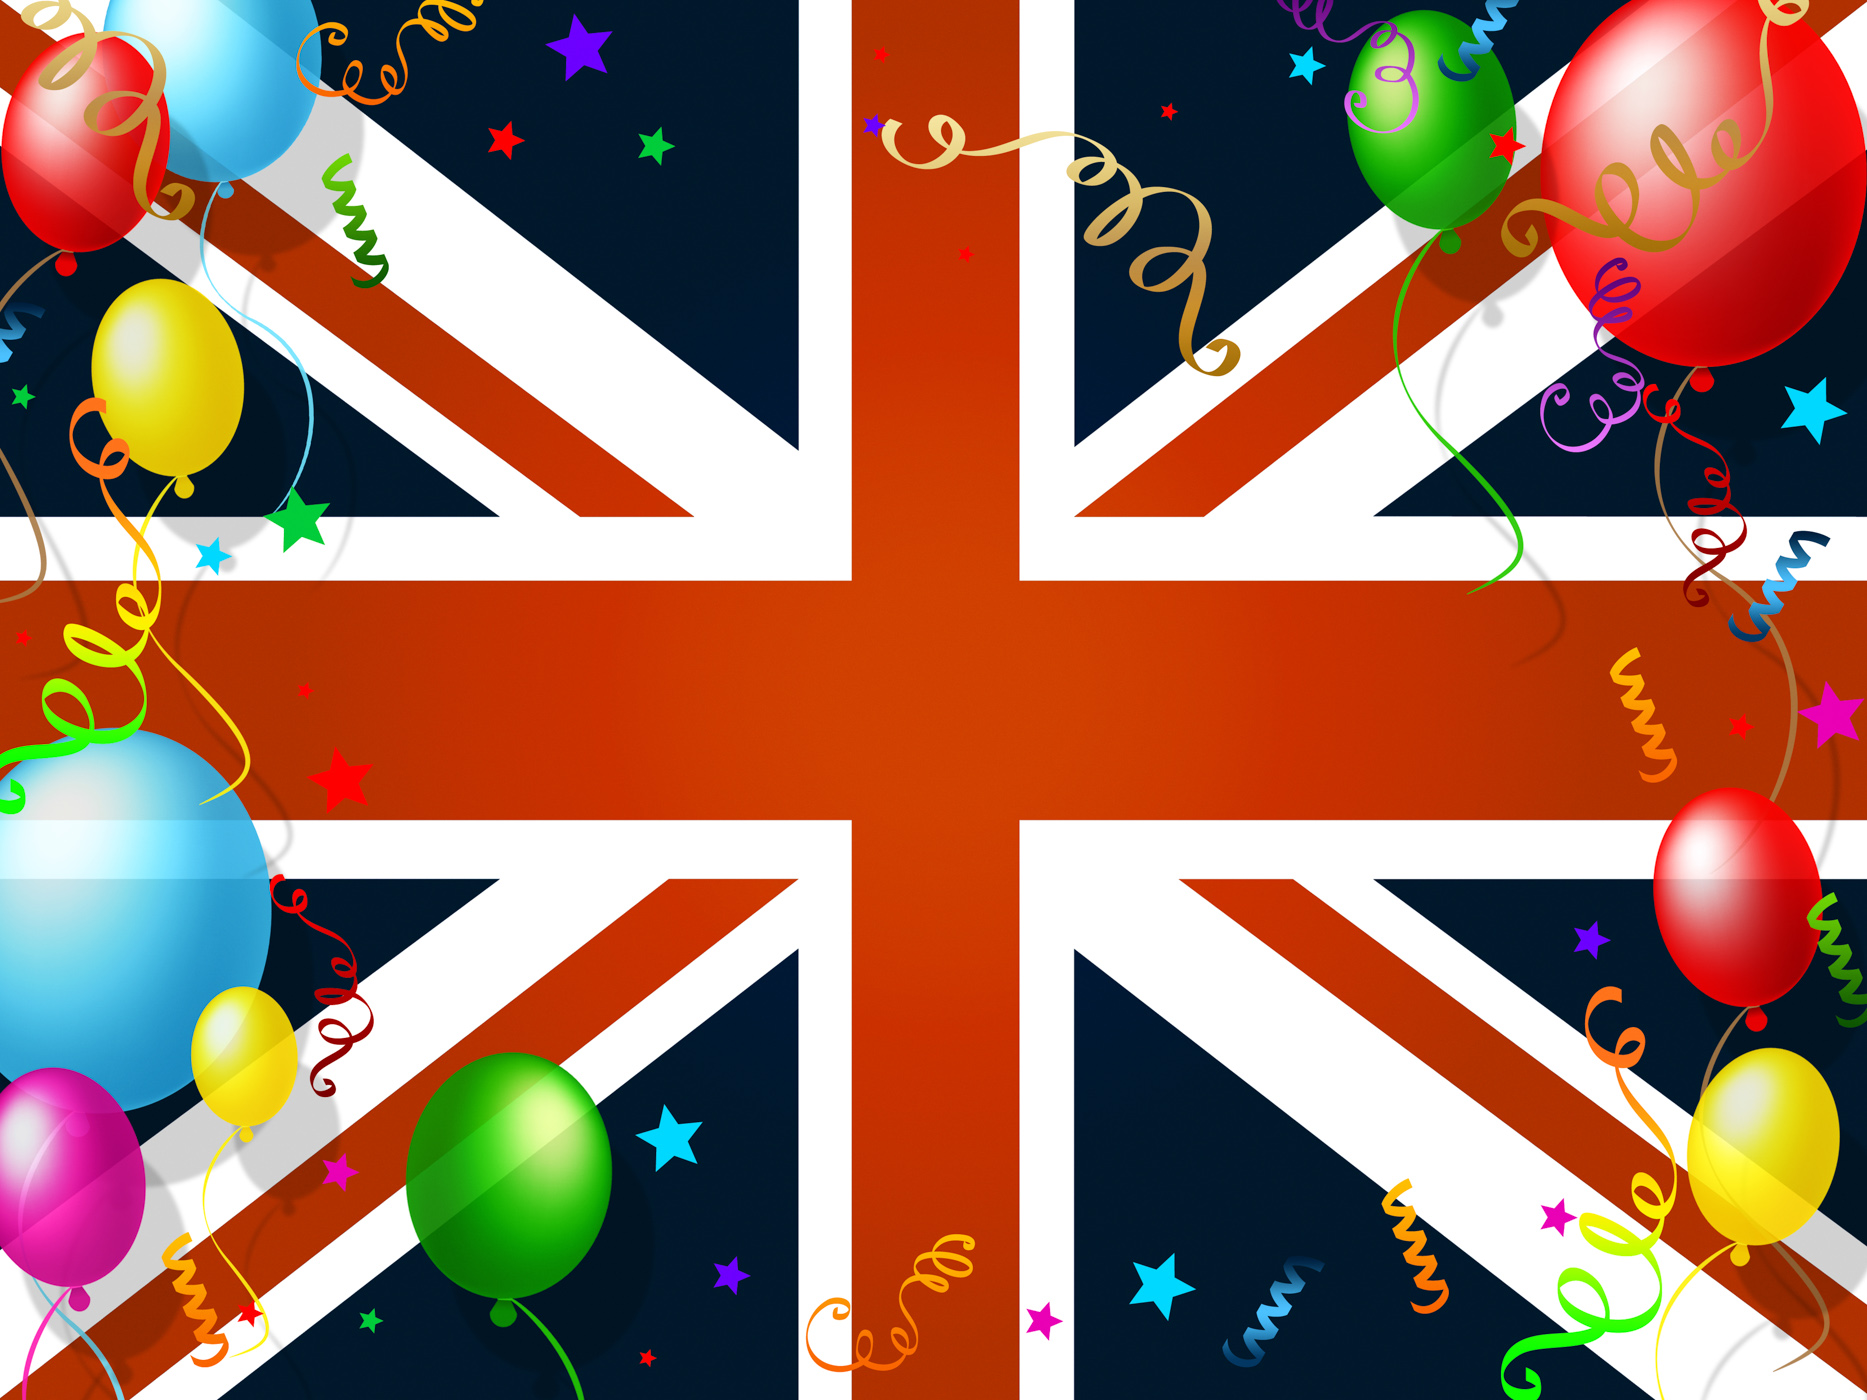 Union jack represents english flag and balloon photo